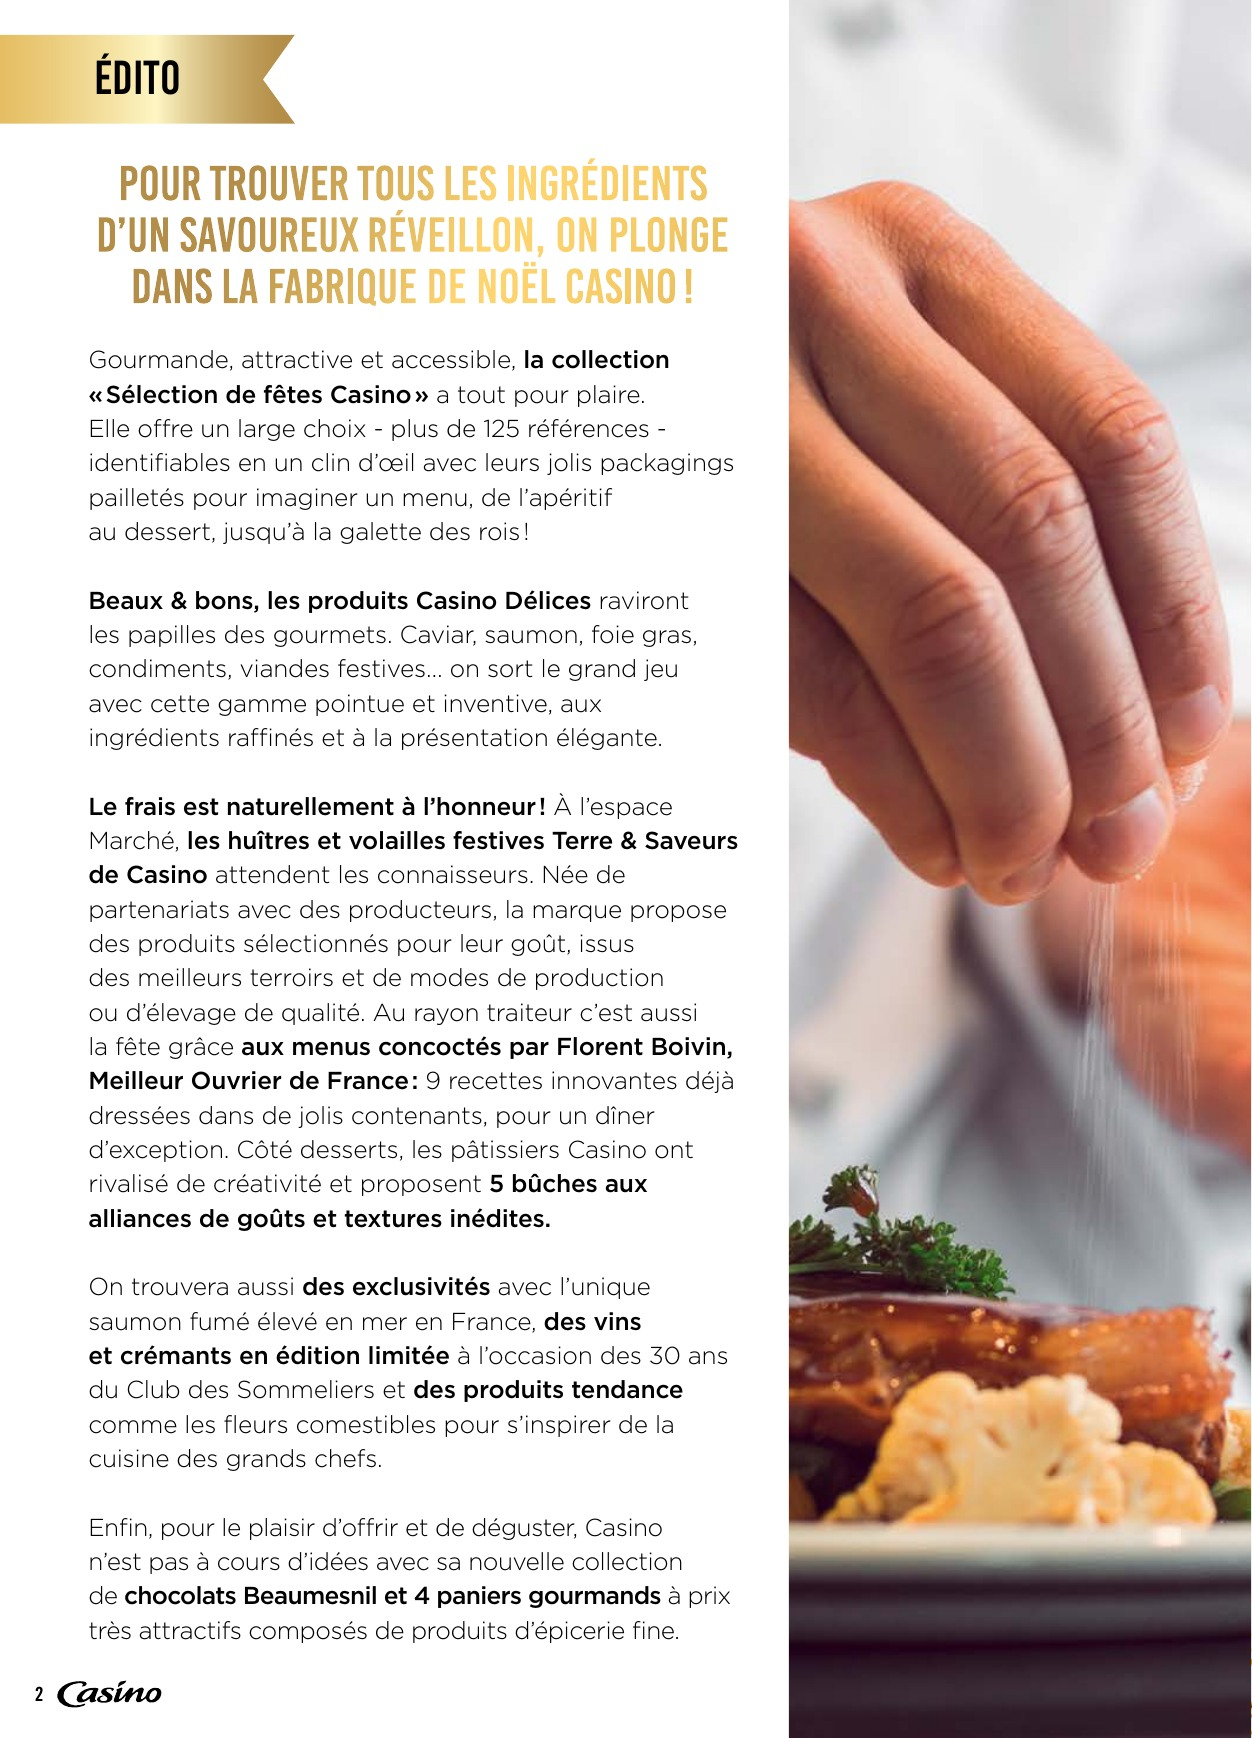 Menu De Noel Grand Chef.Casino La Fabrique De Noel Food 2018